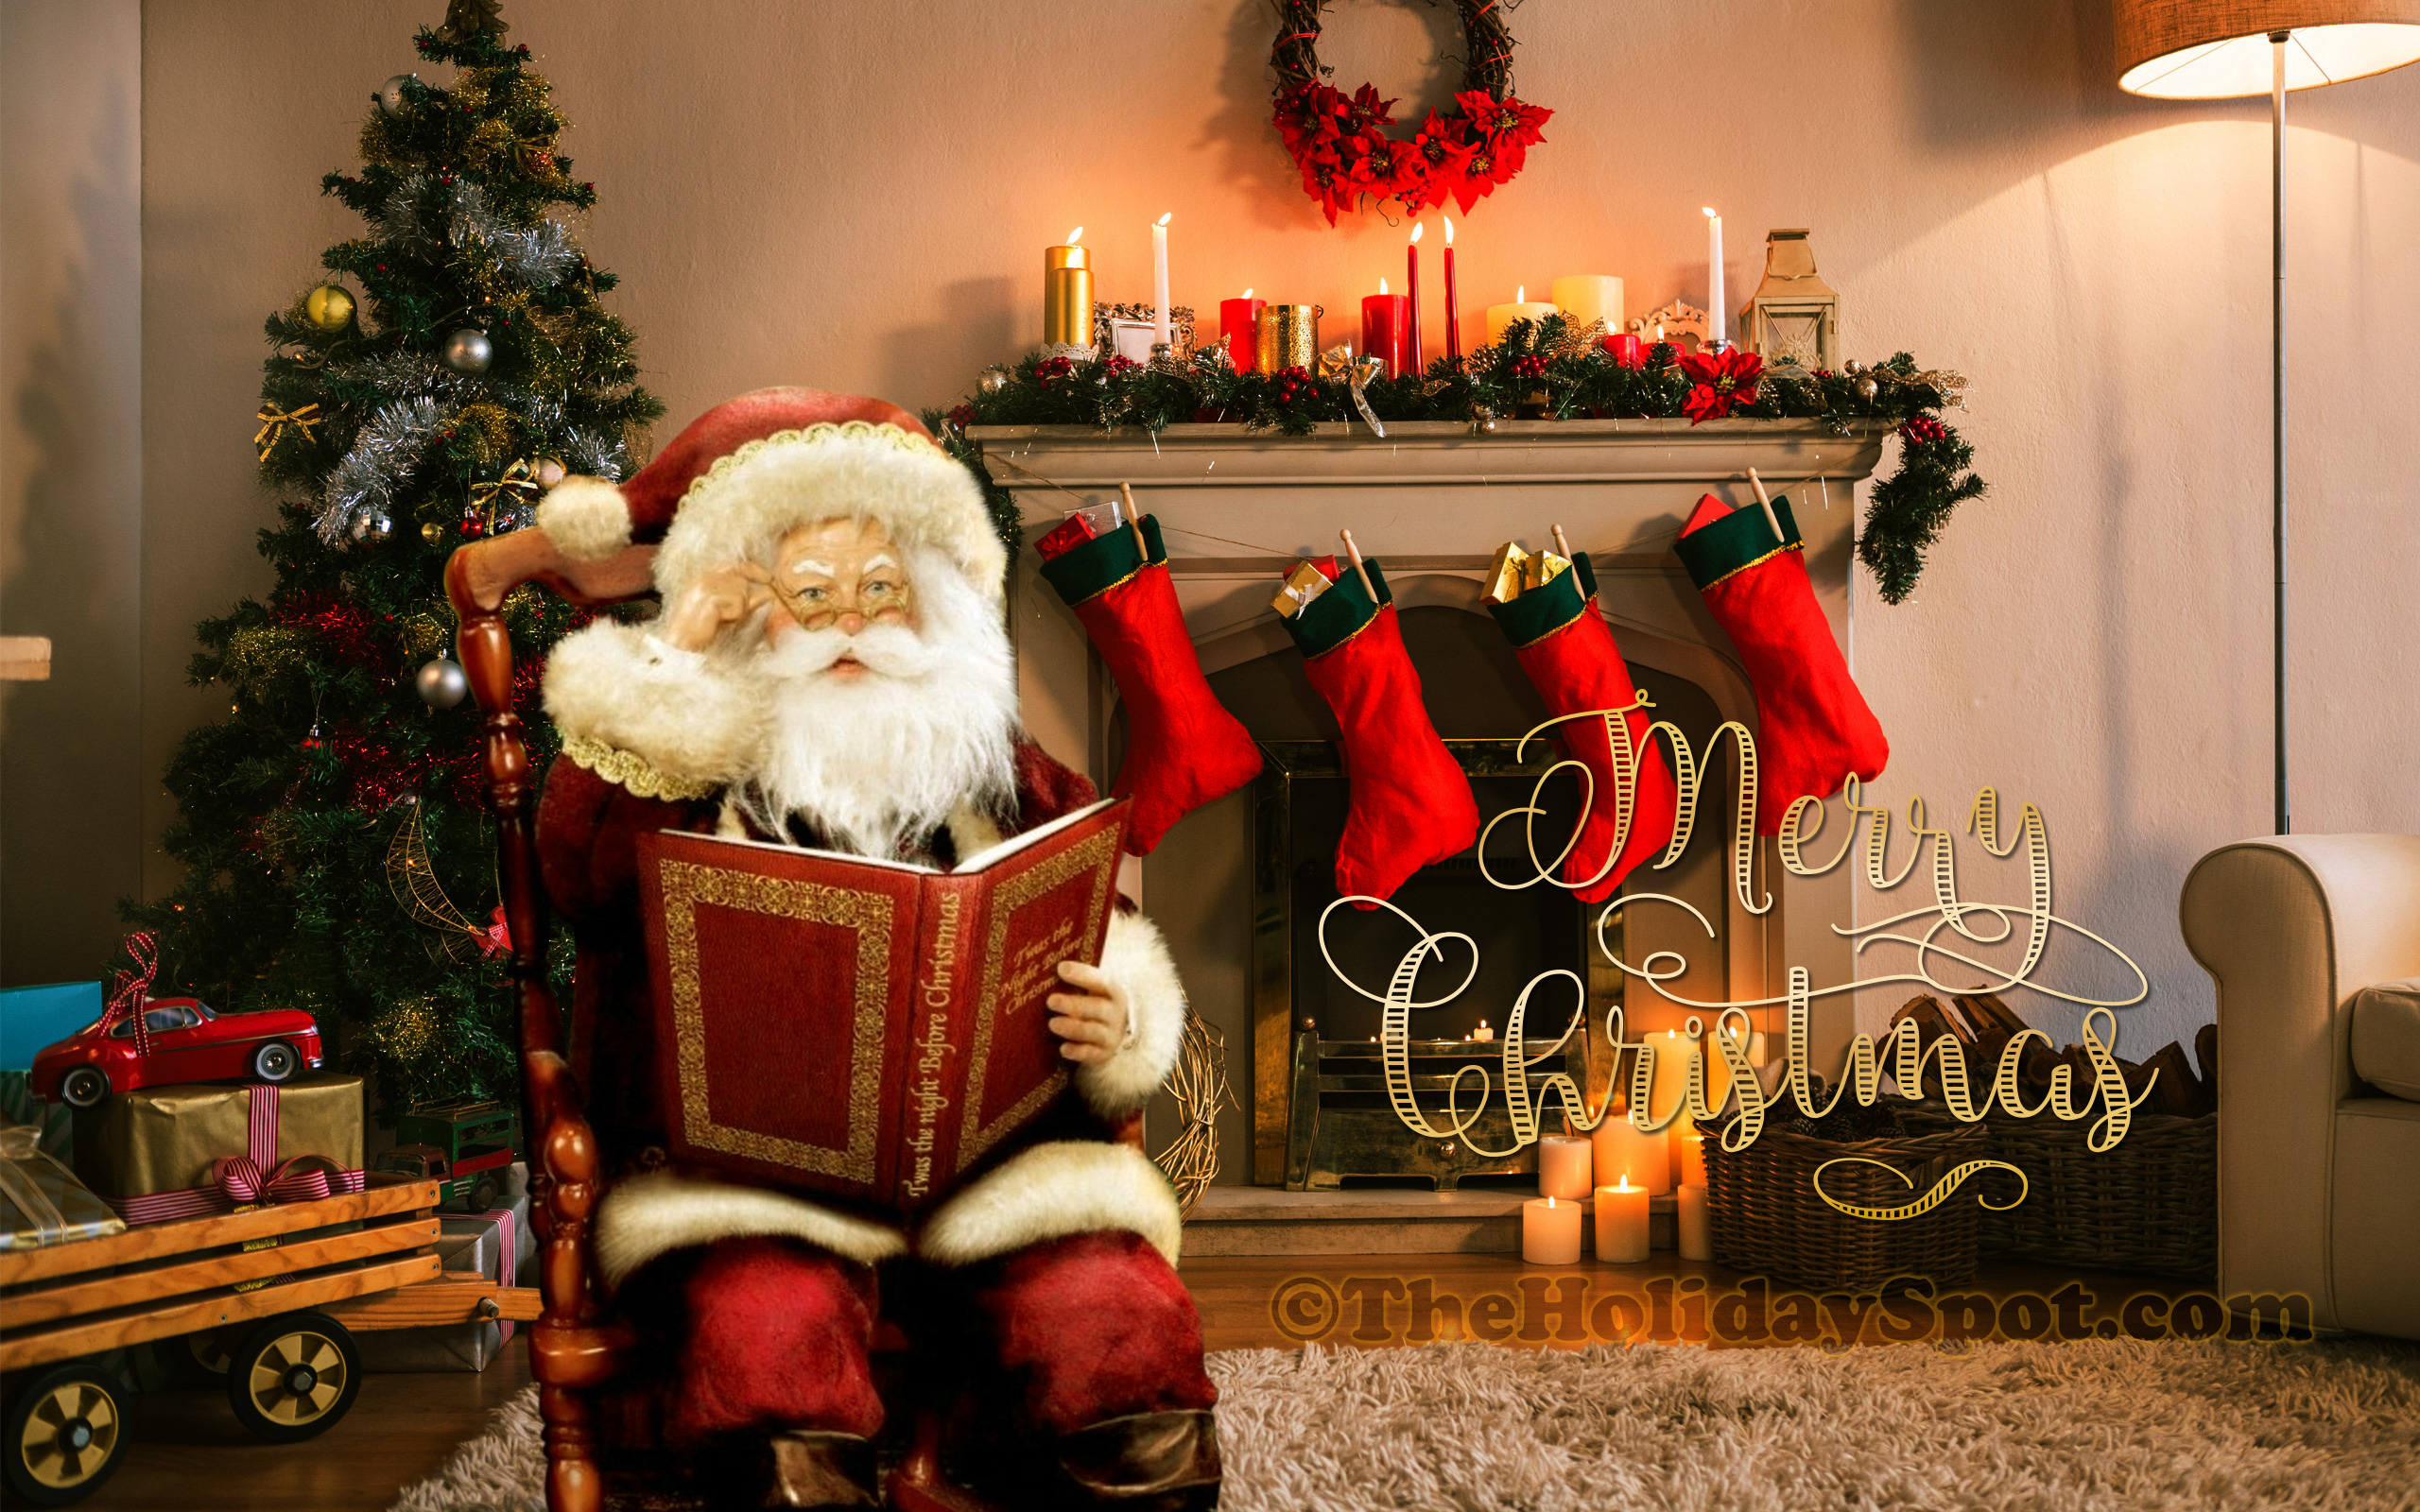 90 Christmas Hd 1080p Wallpapers Download Christmas Hd Wallpapers Christmas Background Images